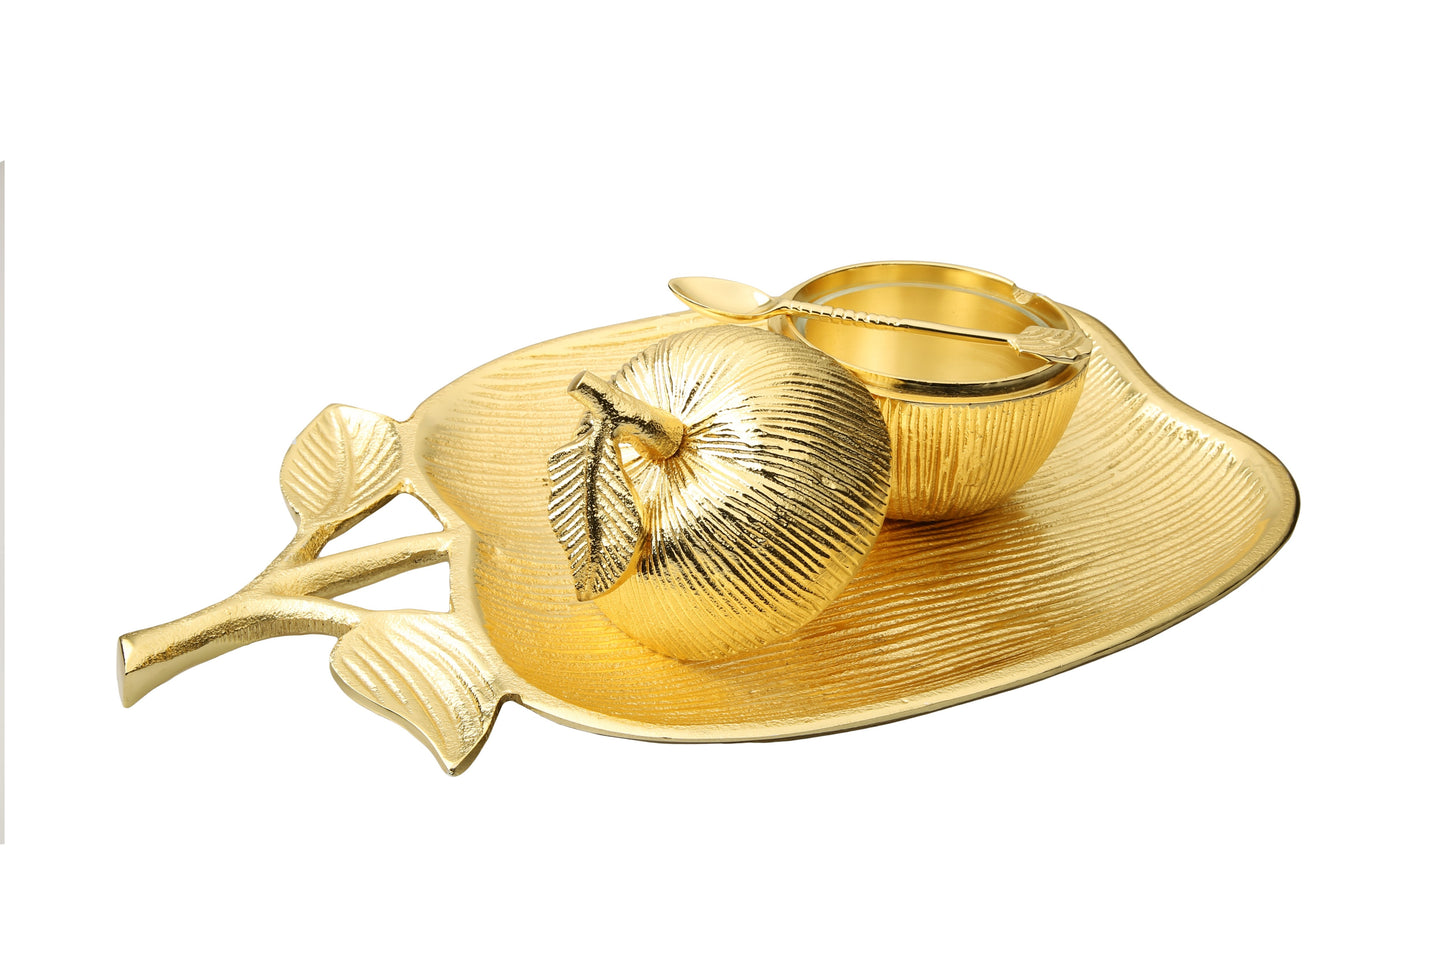 Large Gold Apple Shaped Dish with Removable Honey Jar